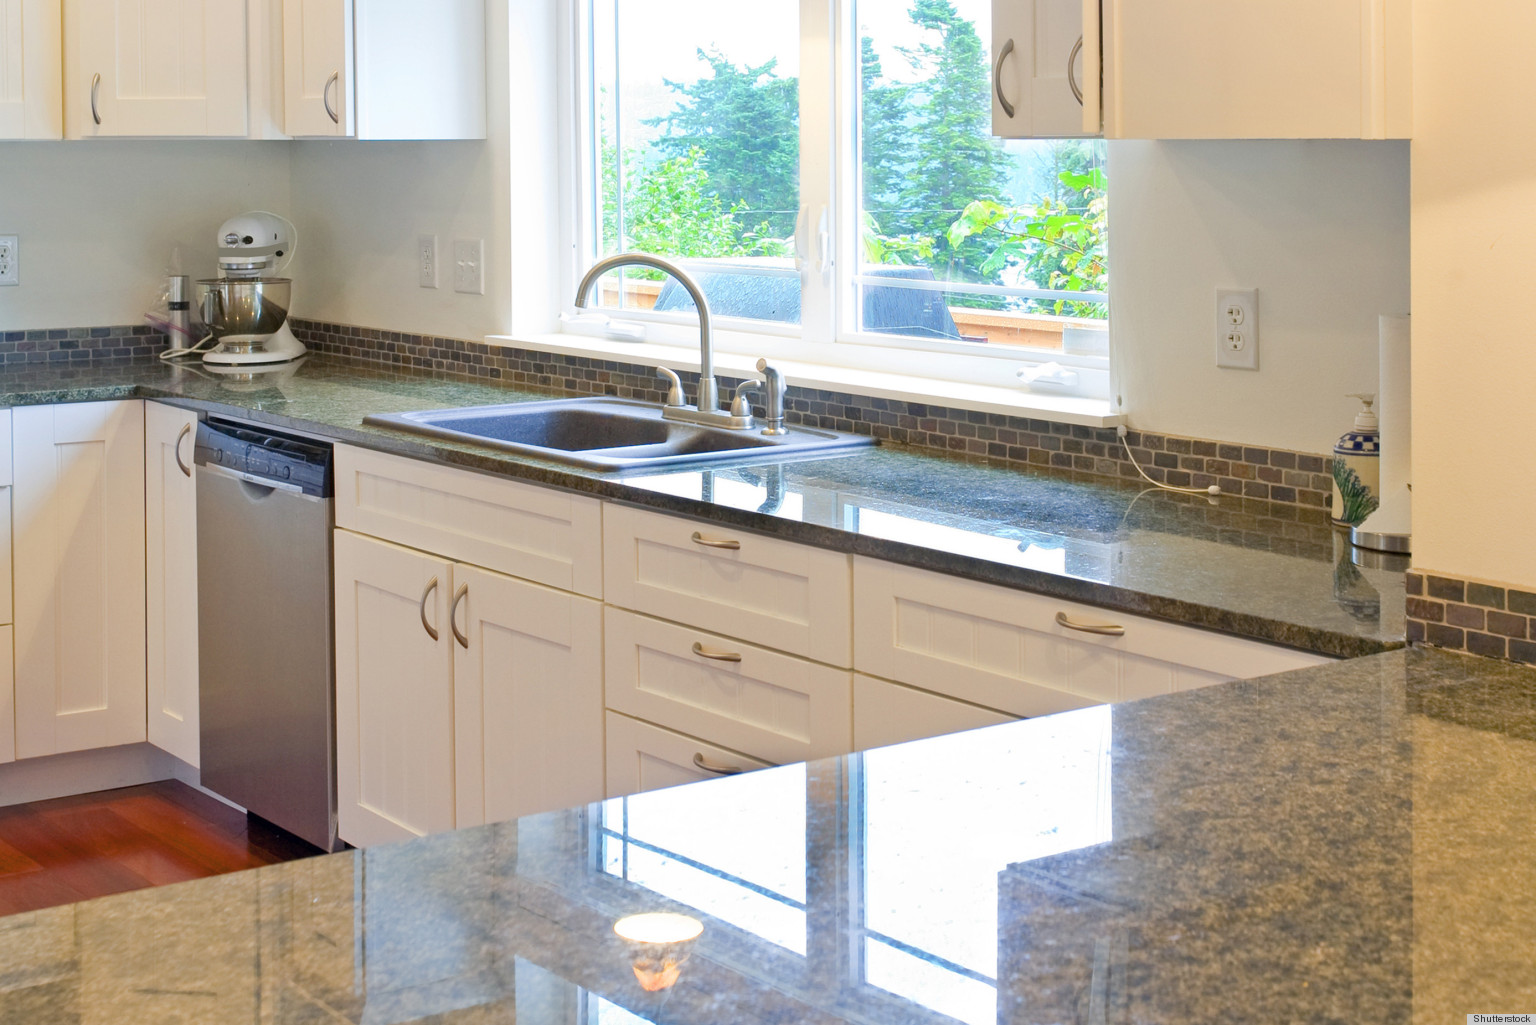 Kitchen Countertops Of Unclutter Your Life Clearing The Kitchen Counter Of